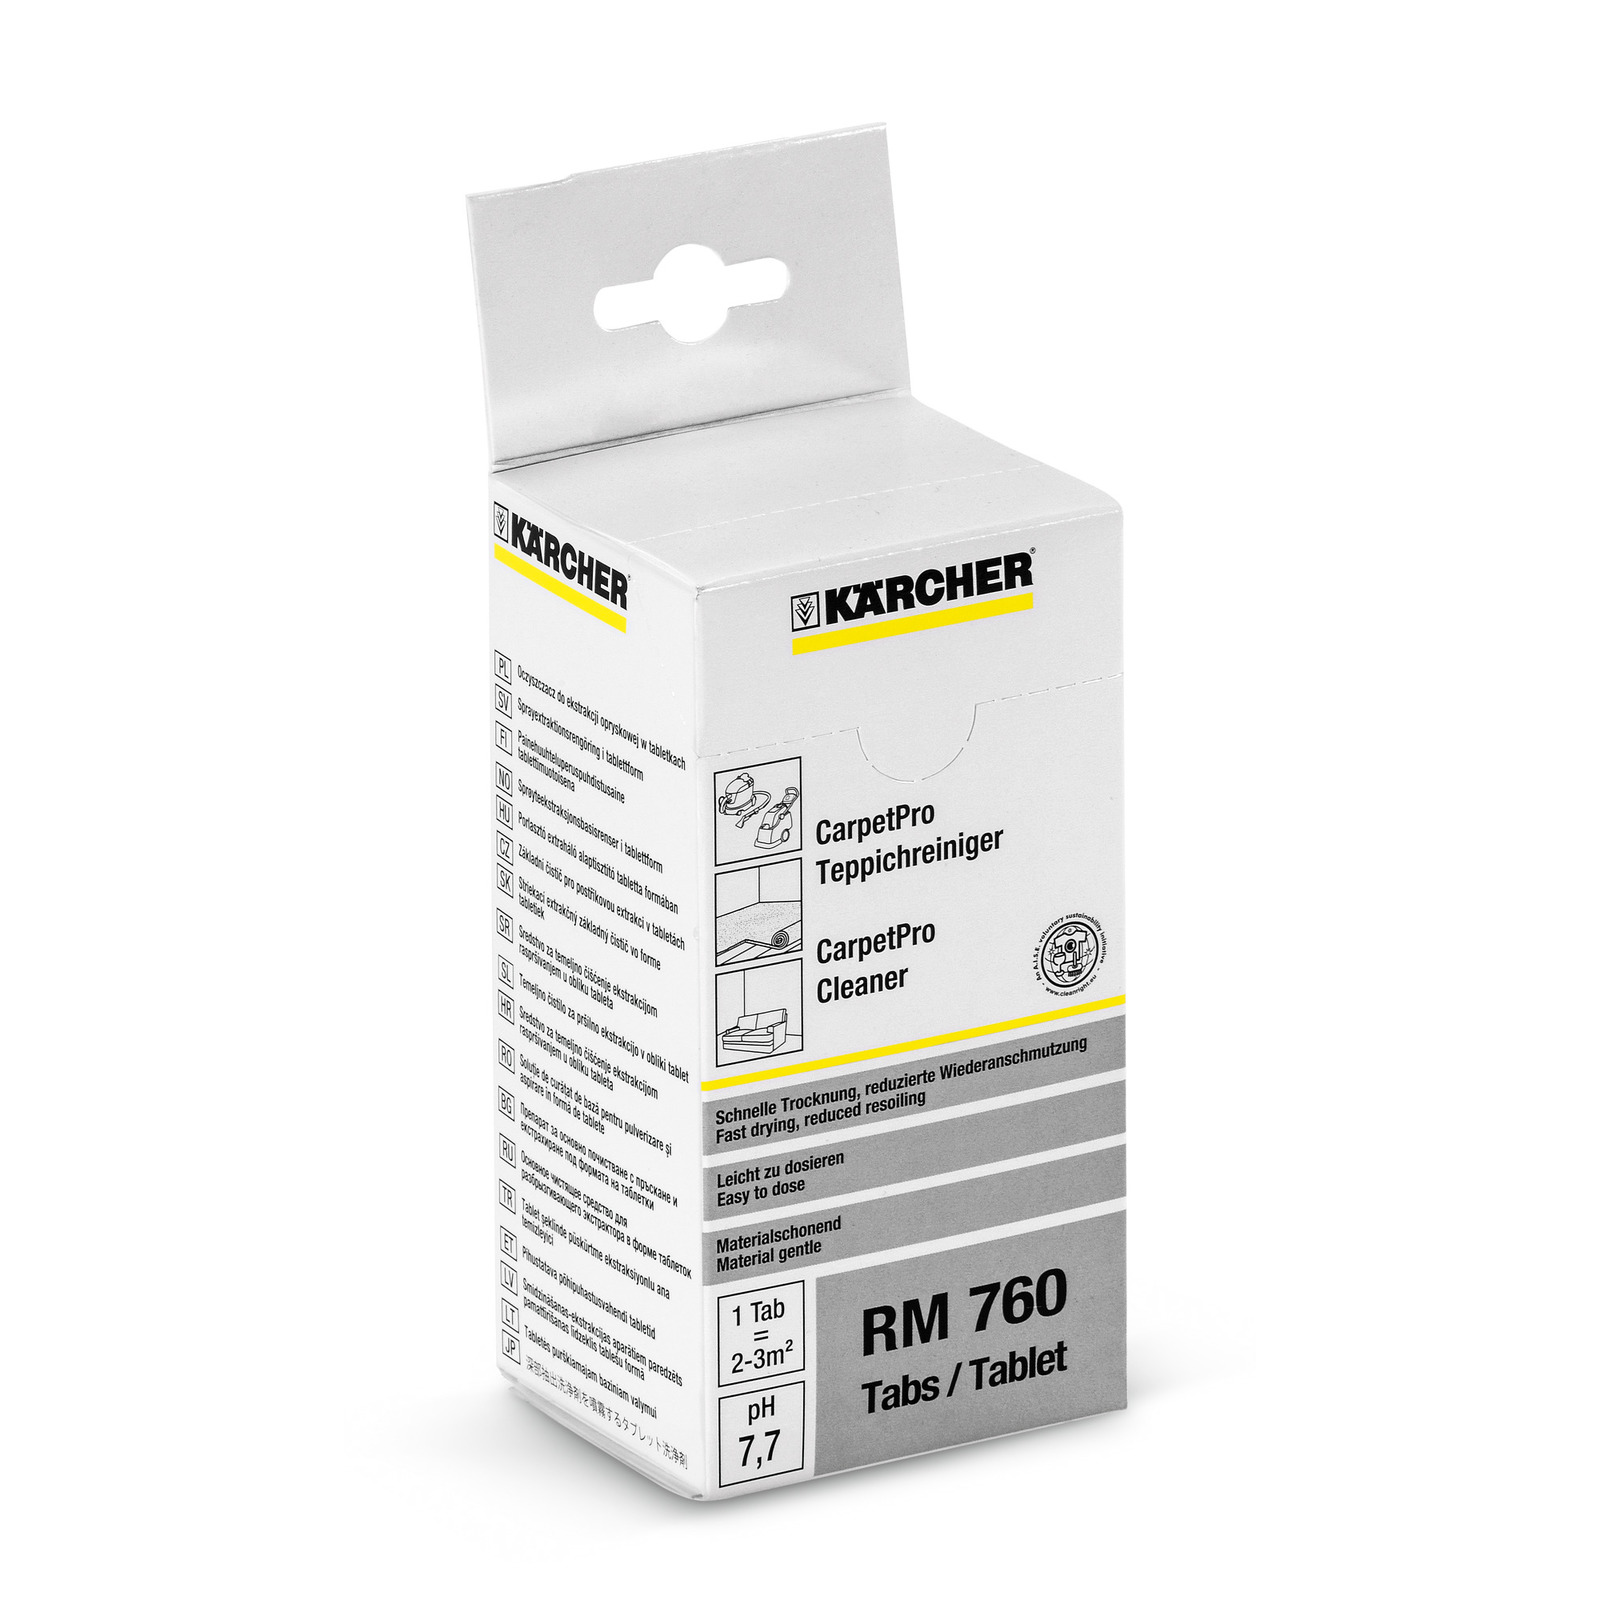 Karcher RM 760 Carpet Cleaning iCapsol Tablets 16 Count 6.290-828.0 Encapsulation No Rinse Technology 6.295-850.0